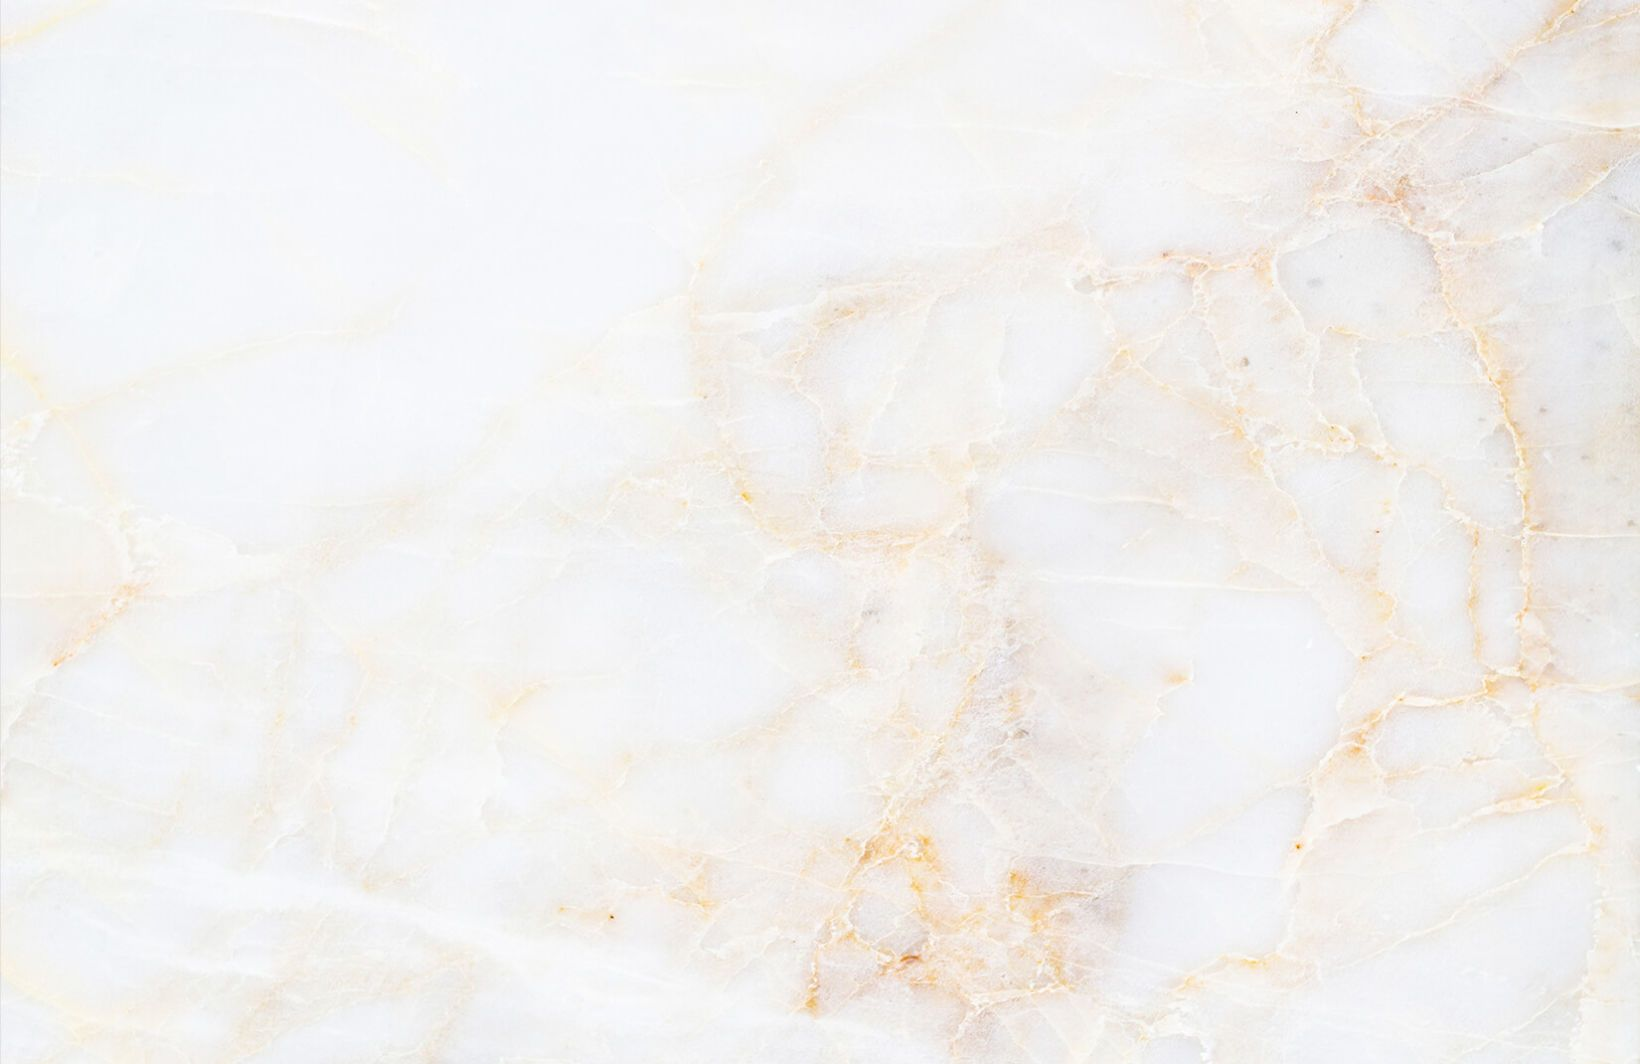 White And Gold Marble Wallpaper Decor Gold Marble